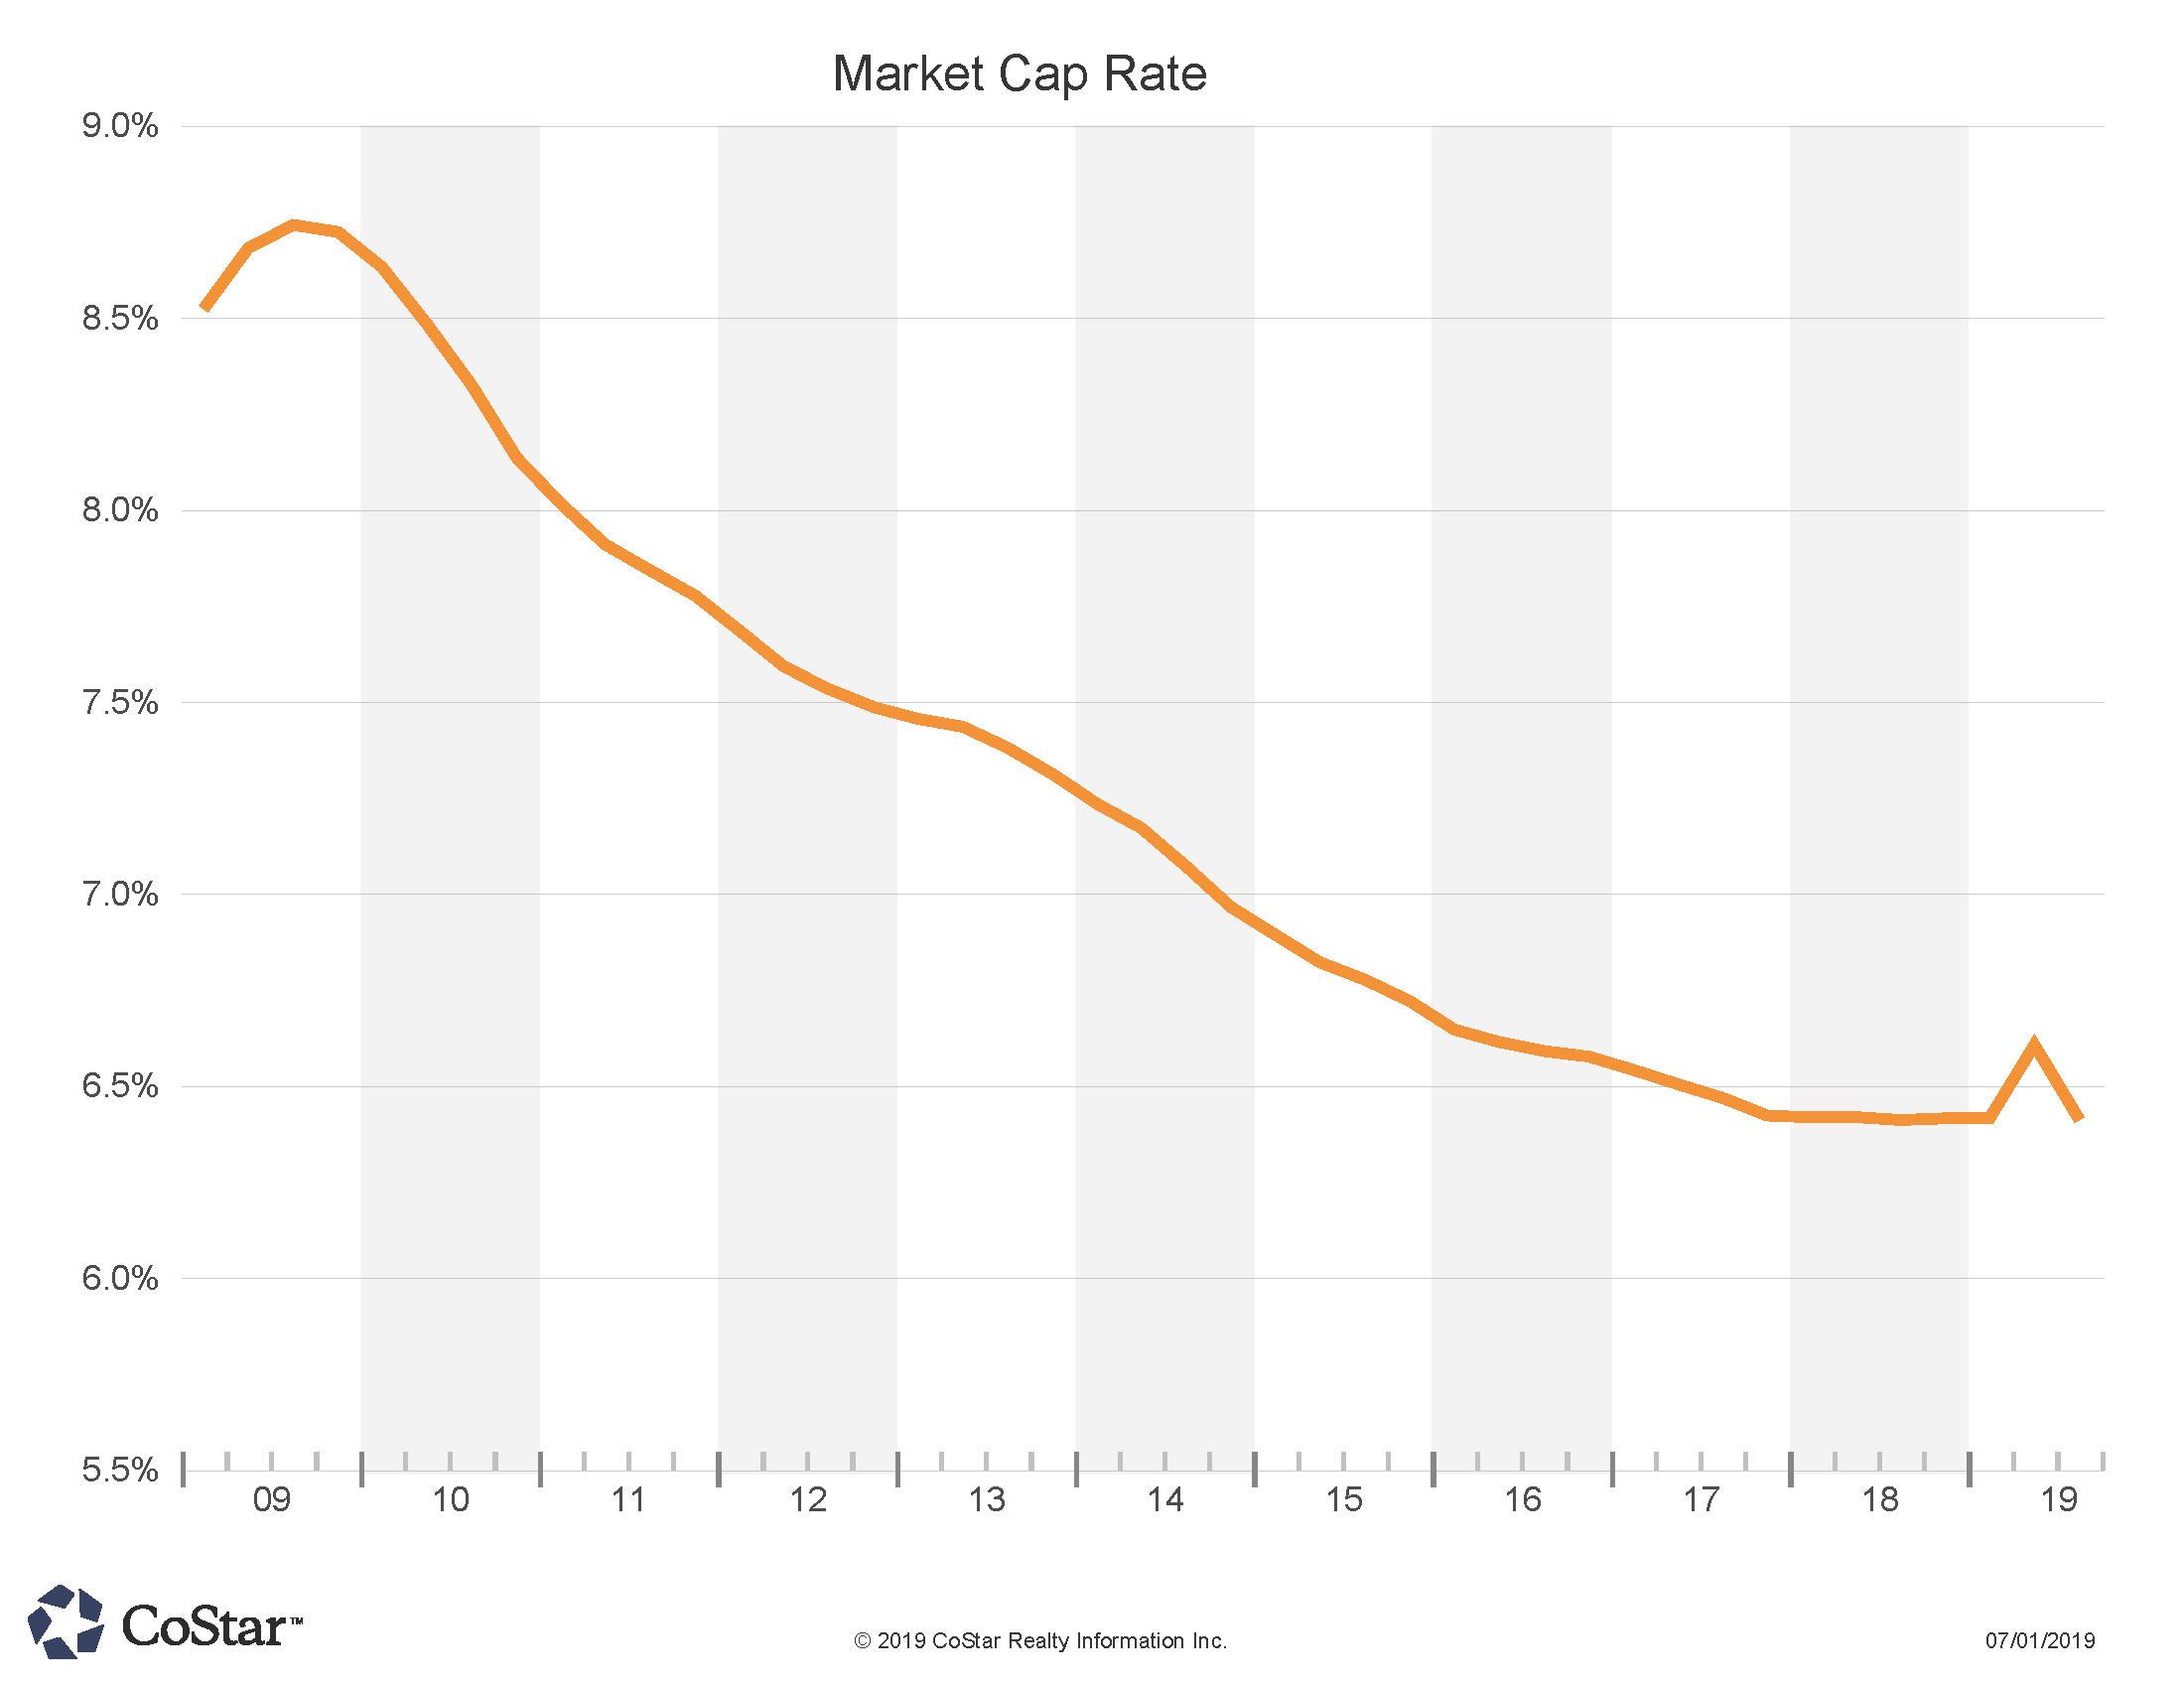 10 year CRE cap rate trend